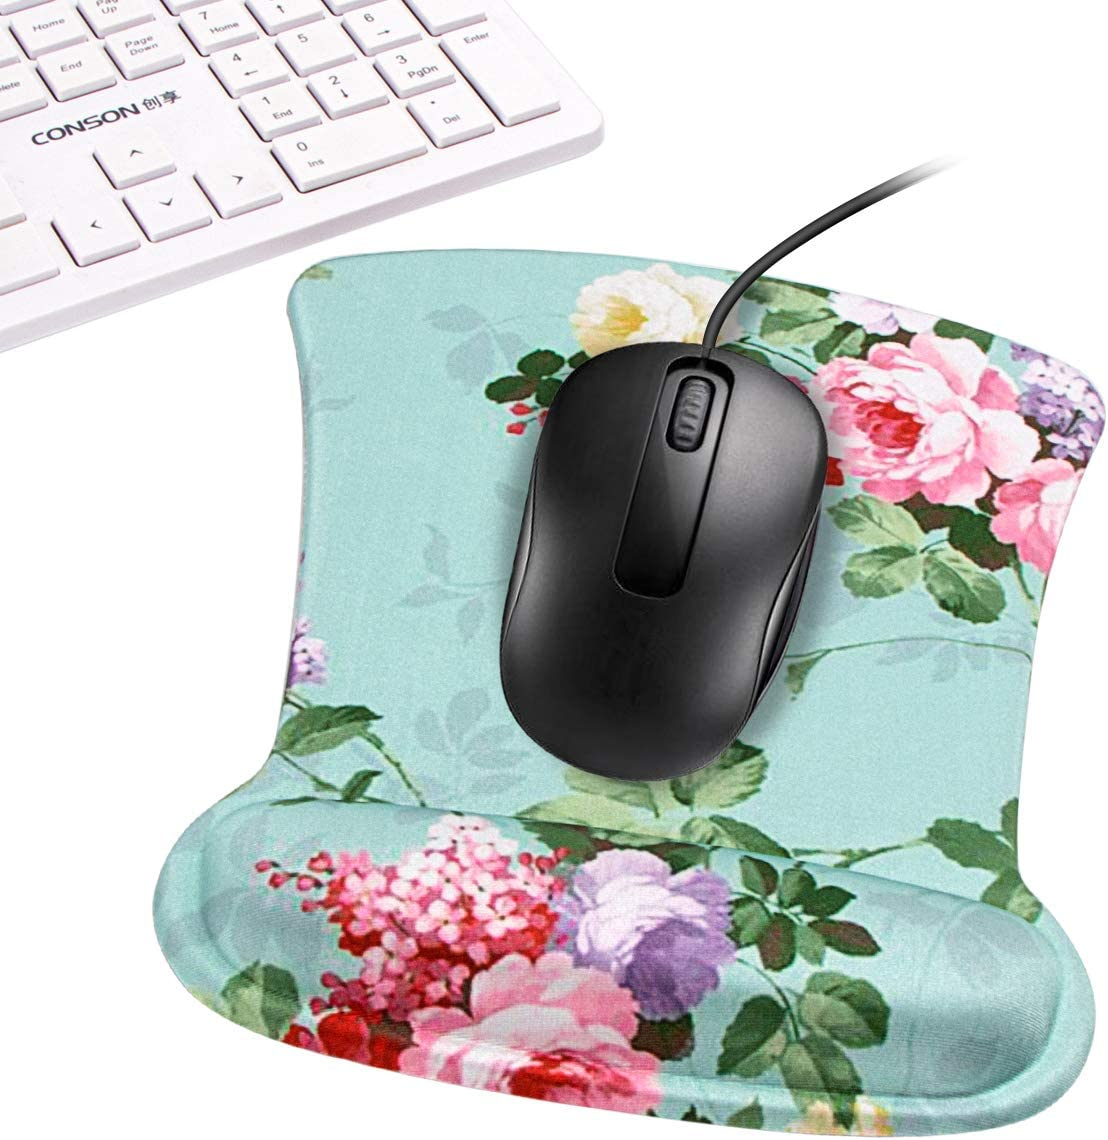 FF1 Non Slip Memory Foam Mouse Pad Wrist Support Wrist Rest for Office Laptop /& Mac Computer Durable /& Comfortable /& Lightweight for Easy Typing /& Pain Relief-Ergonomic Support